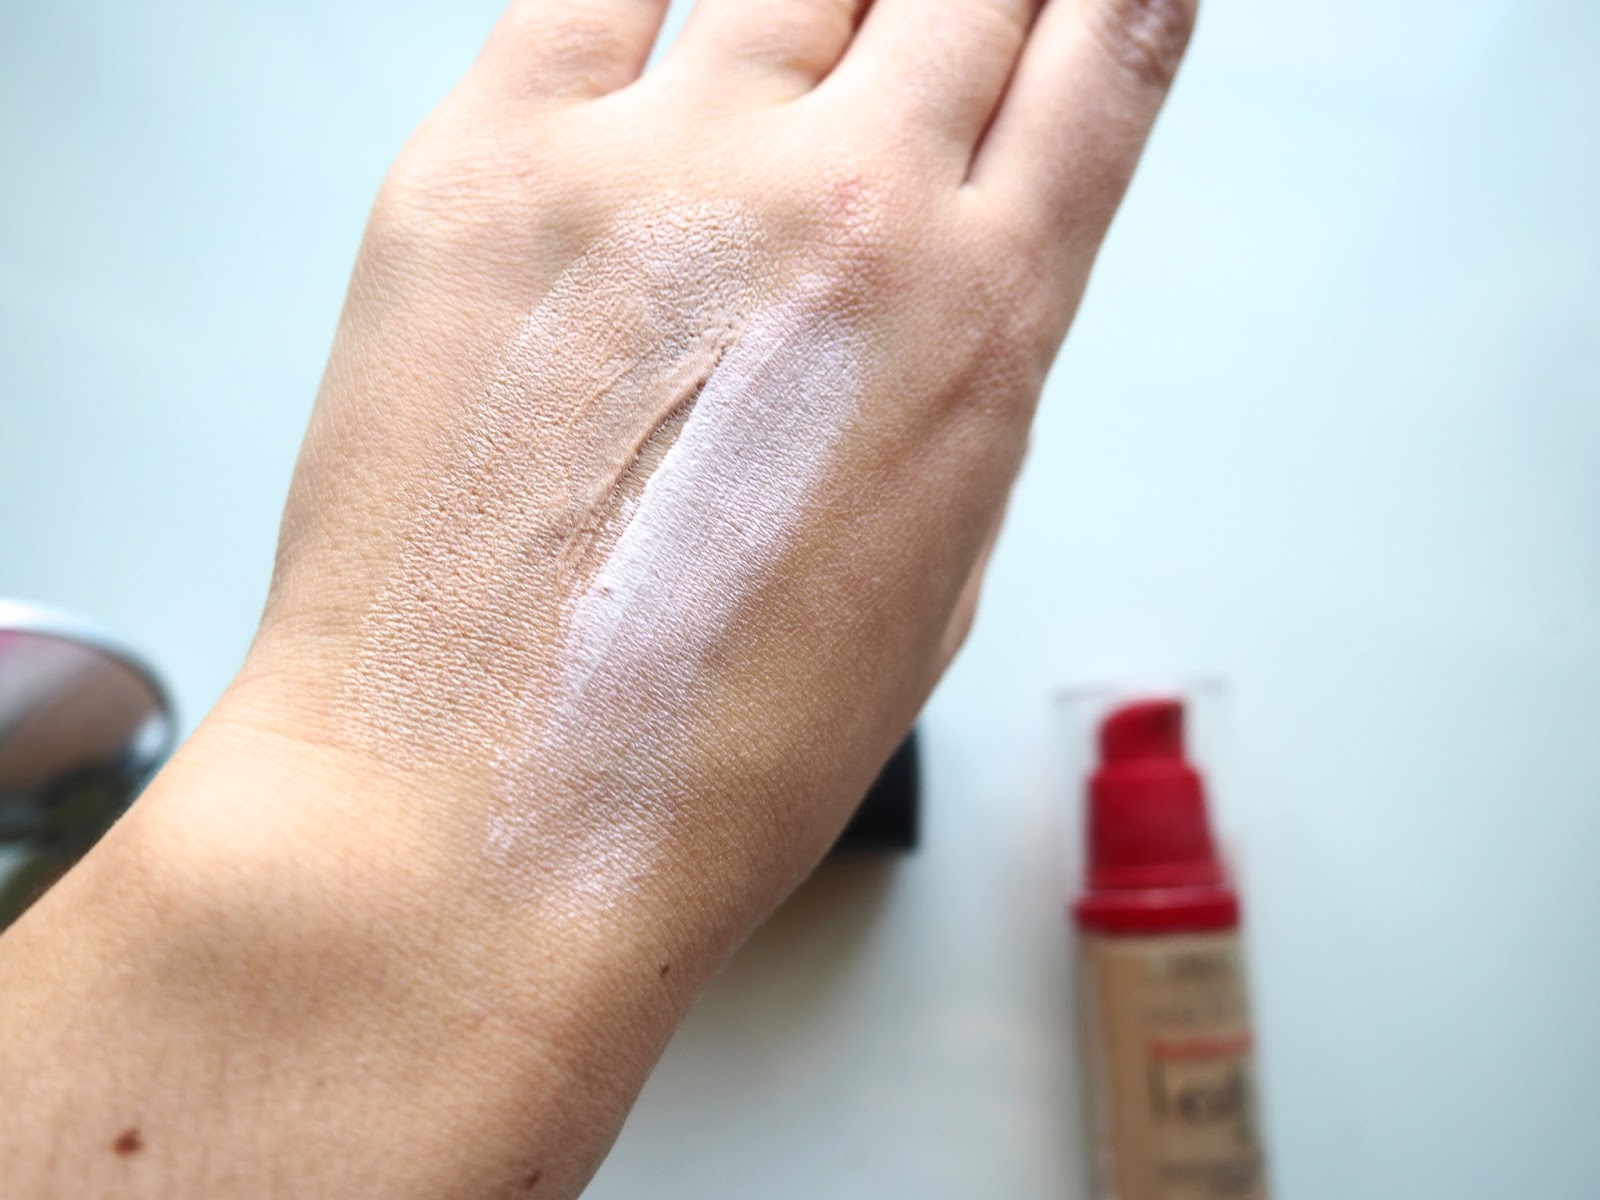 It's Cultured Illuminators Mac Strobe Cream and Rimmel get up and glow swatches